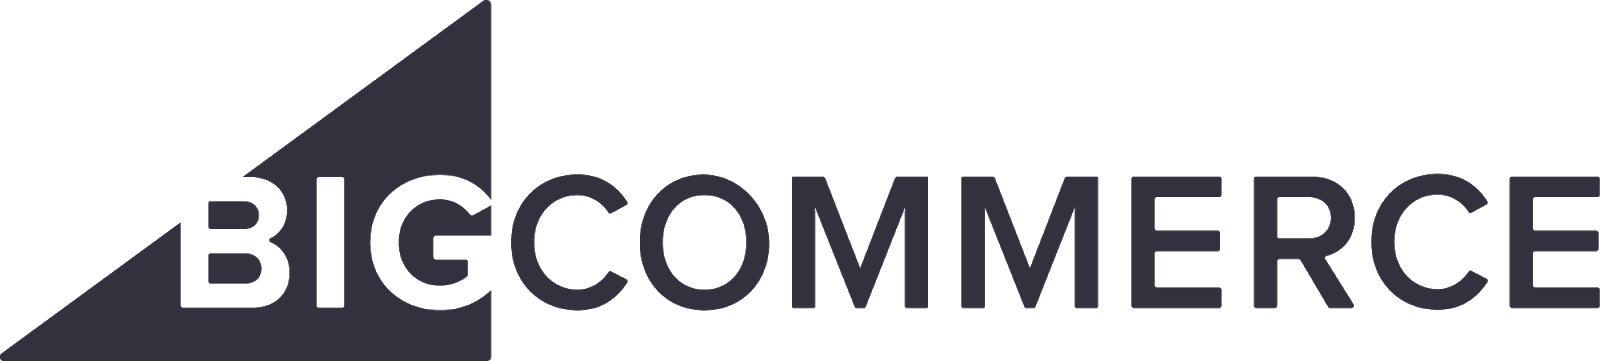 Big Commerce logo